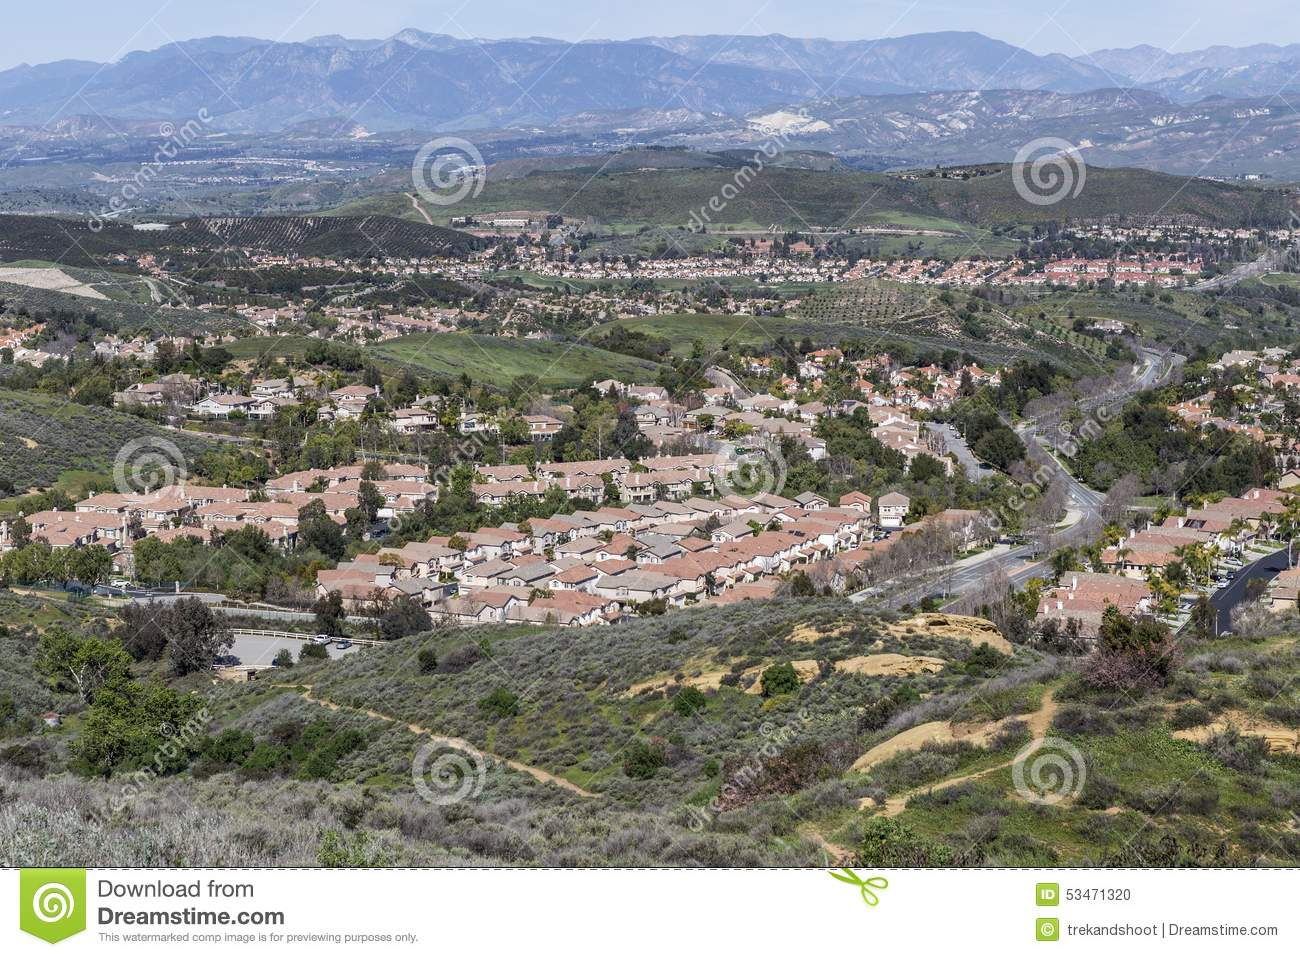 Wood Ranch Simi Valley California - Wood Ranch Simi Valley California Stock Photo - Image: 53471320